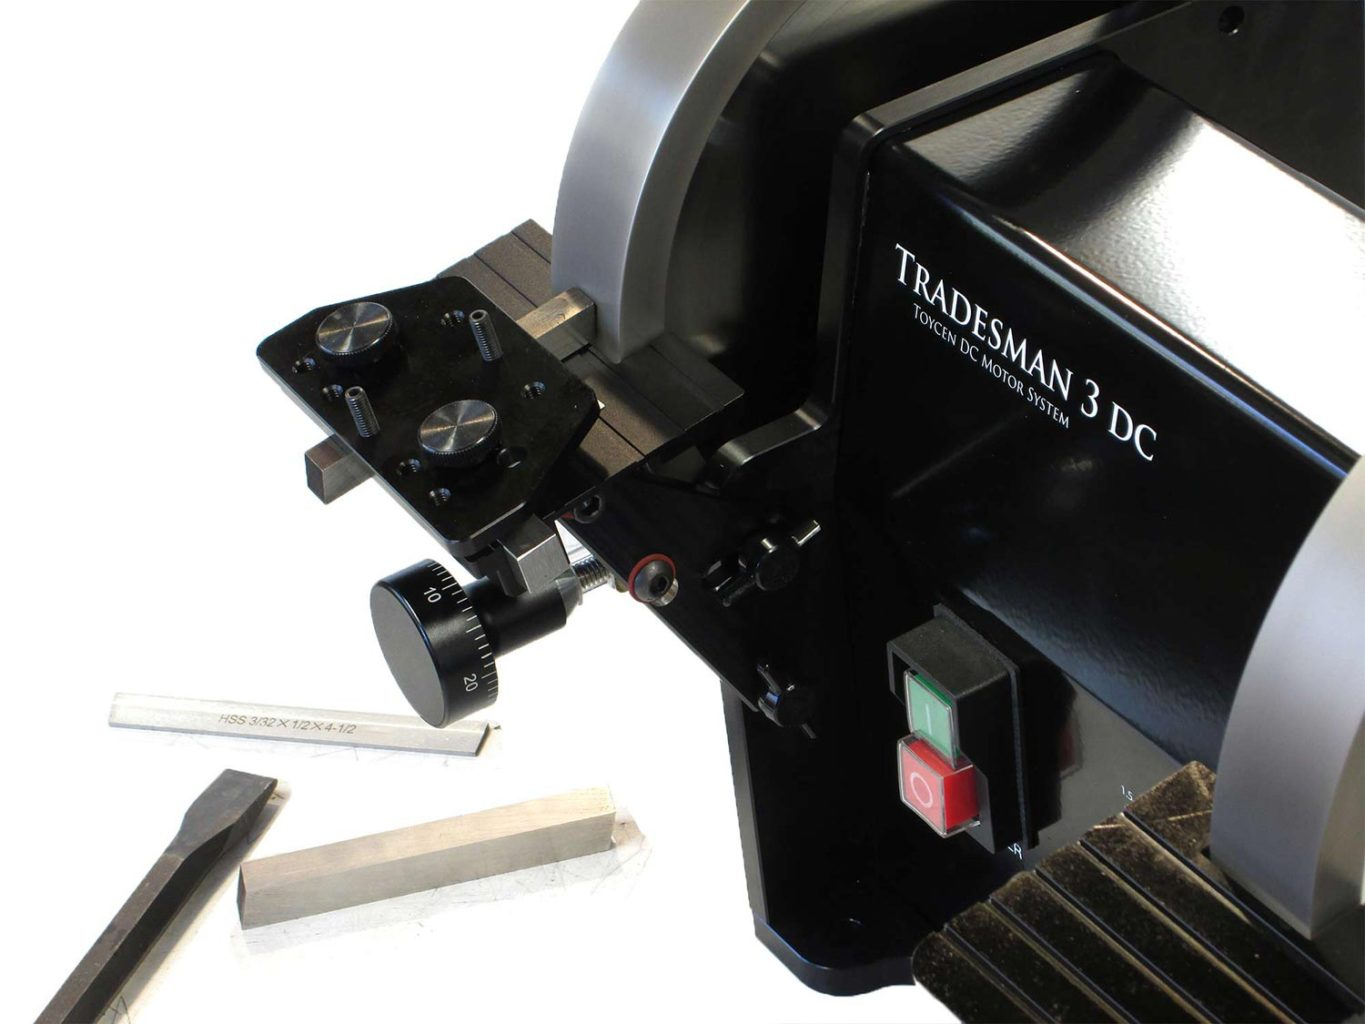 Tradesman Dc Variable Speed Bench Grinder Feed Rest Micro Adjustment Cuttermasters